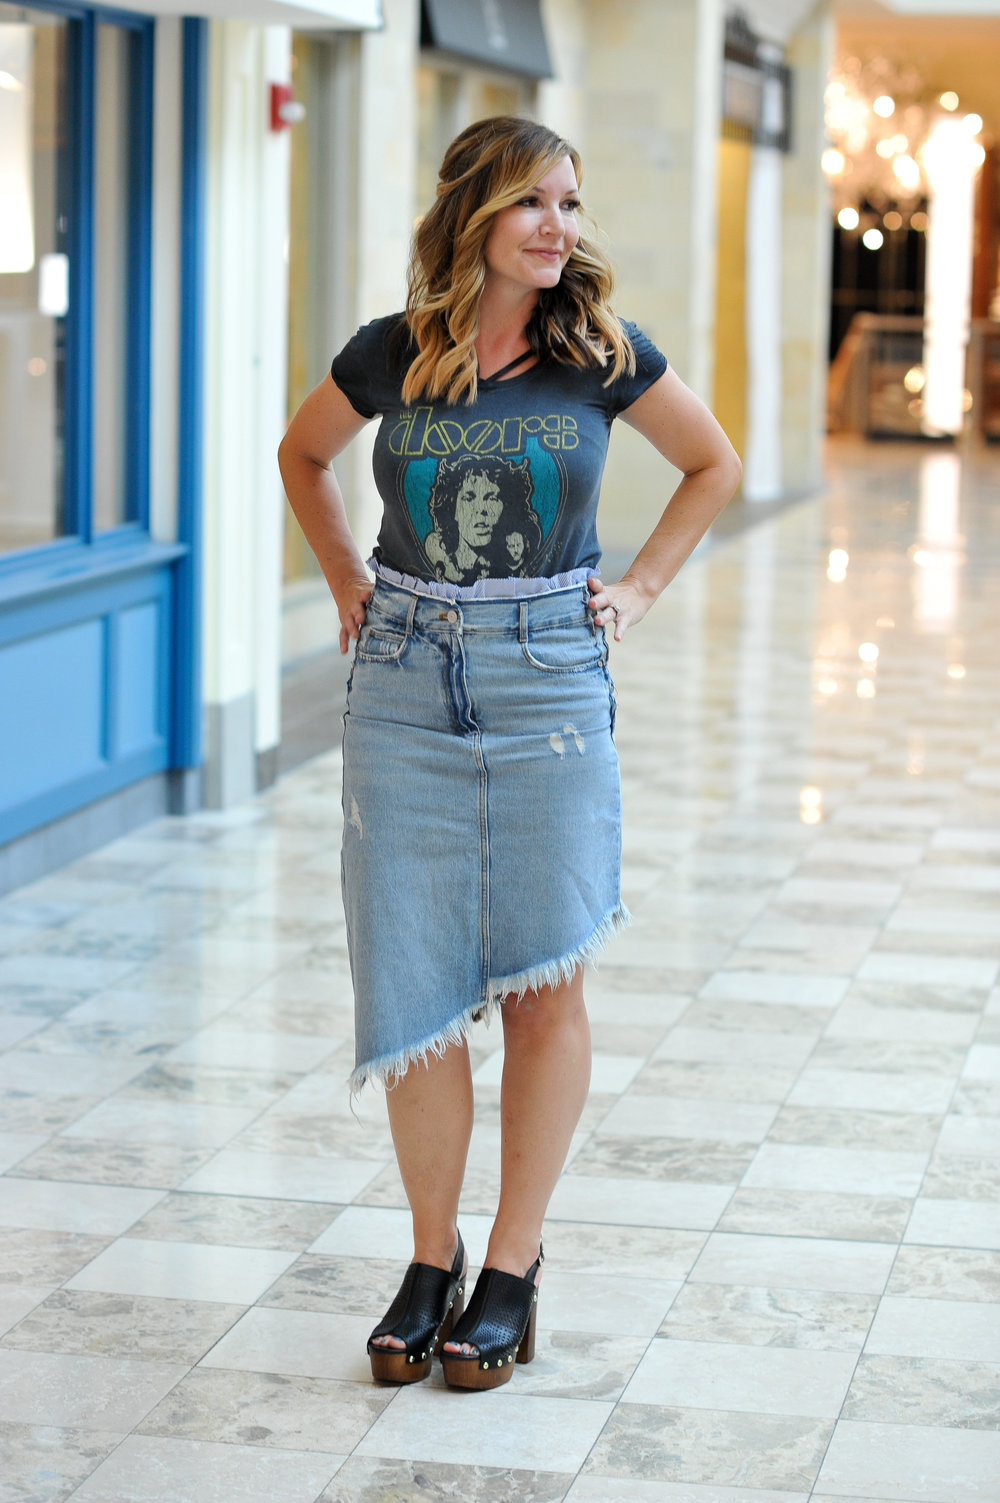 denim skirt 7.jpg